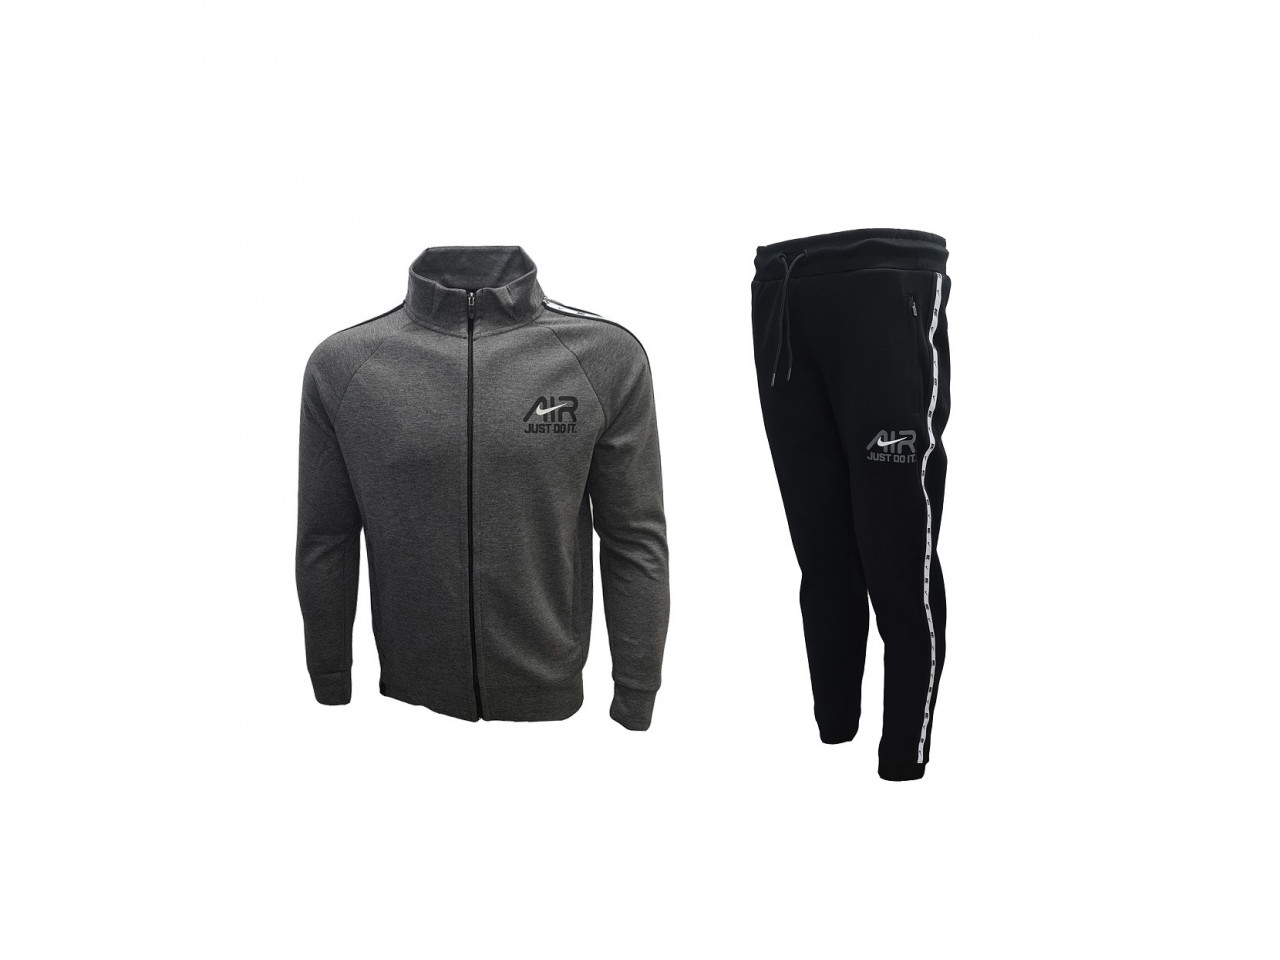 Nike Tracksuit AIR Just Do it Dark Grey Black